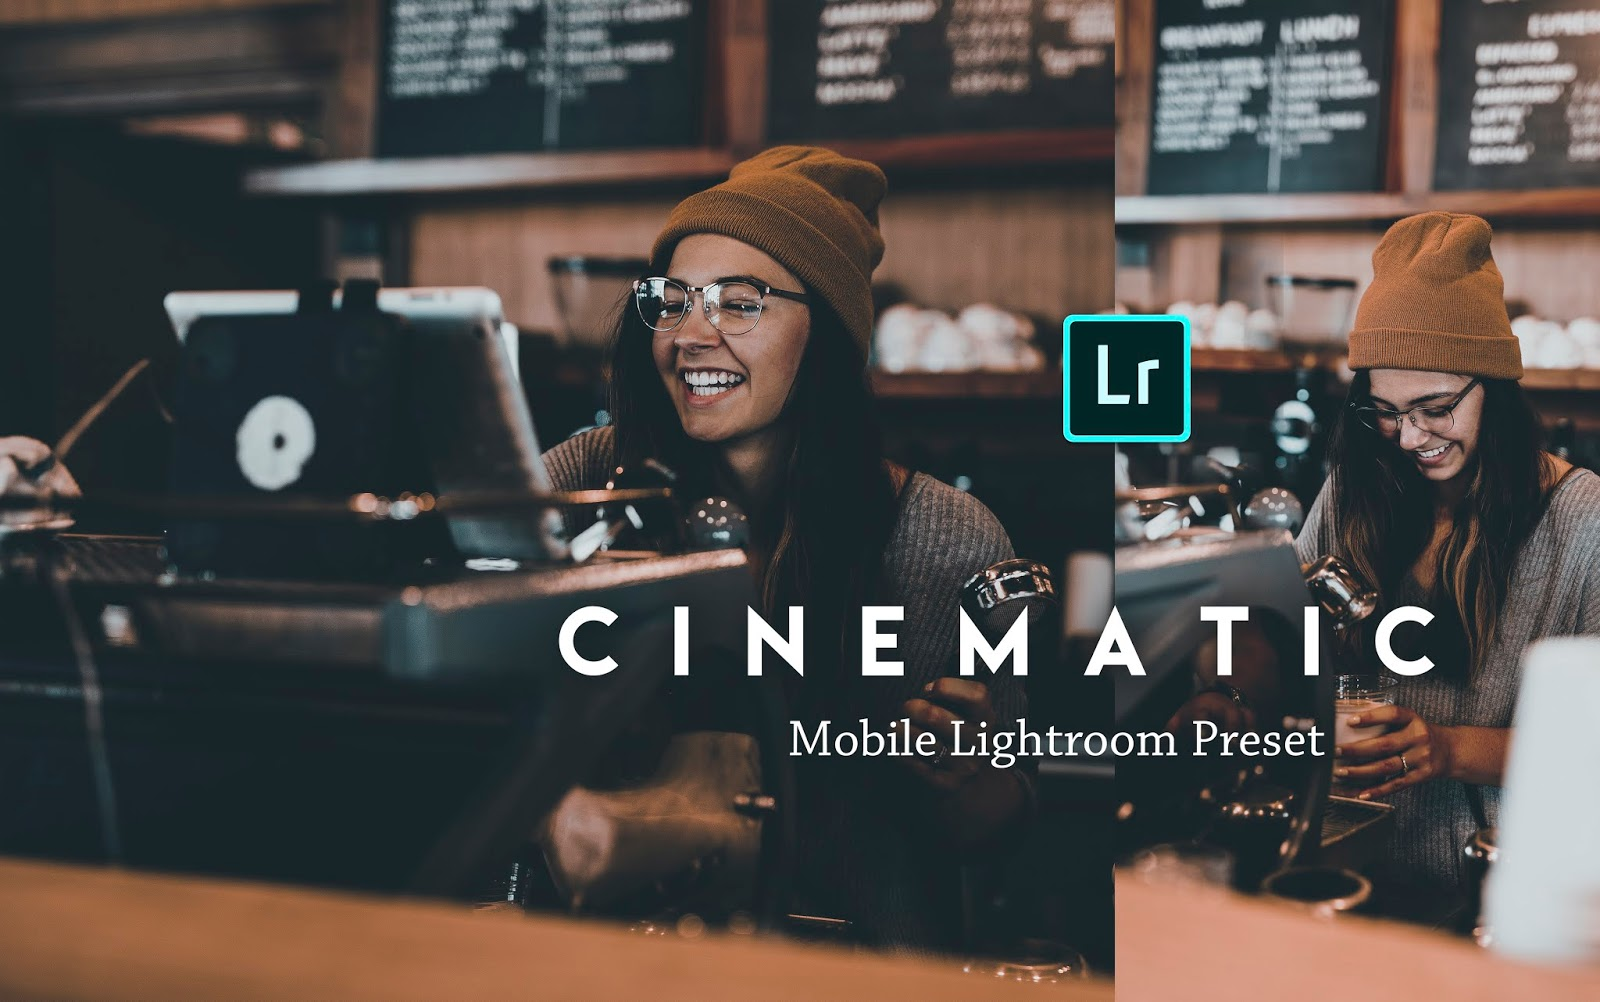 Download Cinematic Mobile Lightroom Presets dng for Free | How to Edit Cinematic Photos in Mobile Lightroom